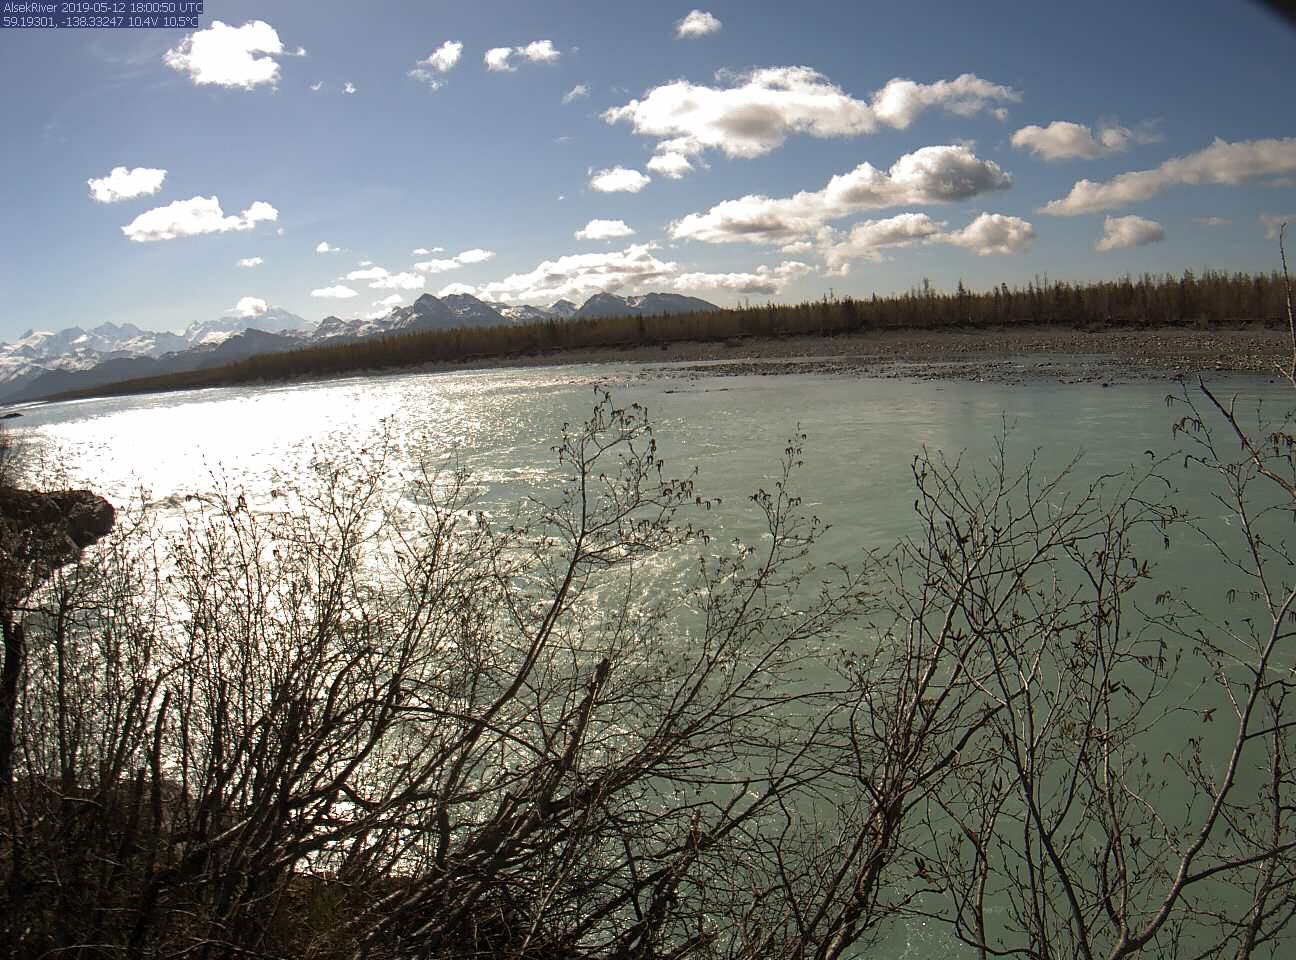 USGS Current Conditions for USGS 15129120 ALSEK R AT DRY BAY NR